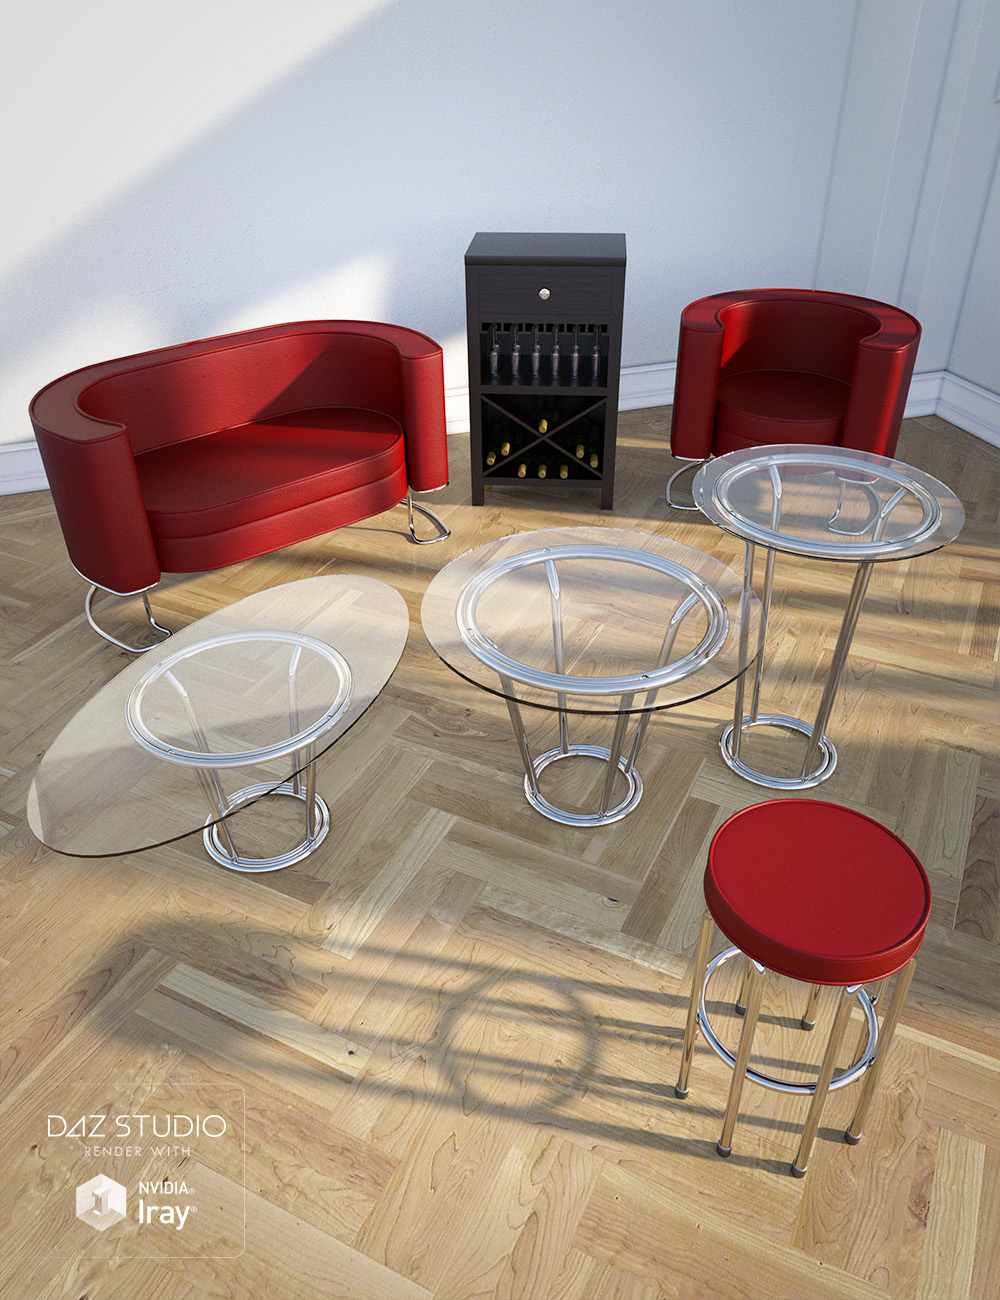 Sleek Lounge Furniture by: , 3D Models by Daz 3D